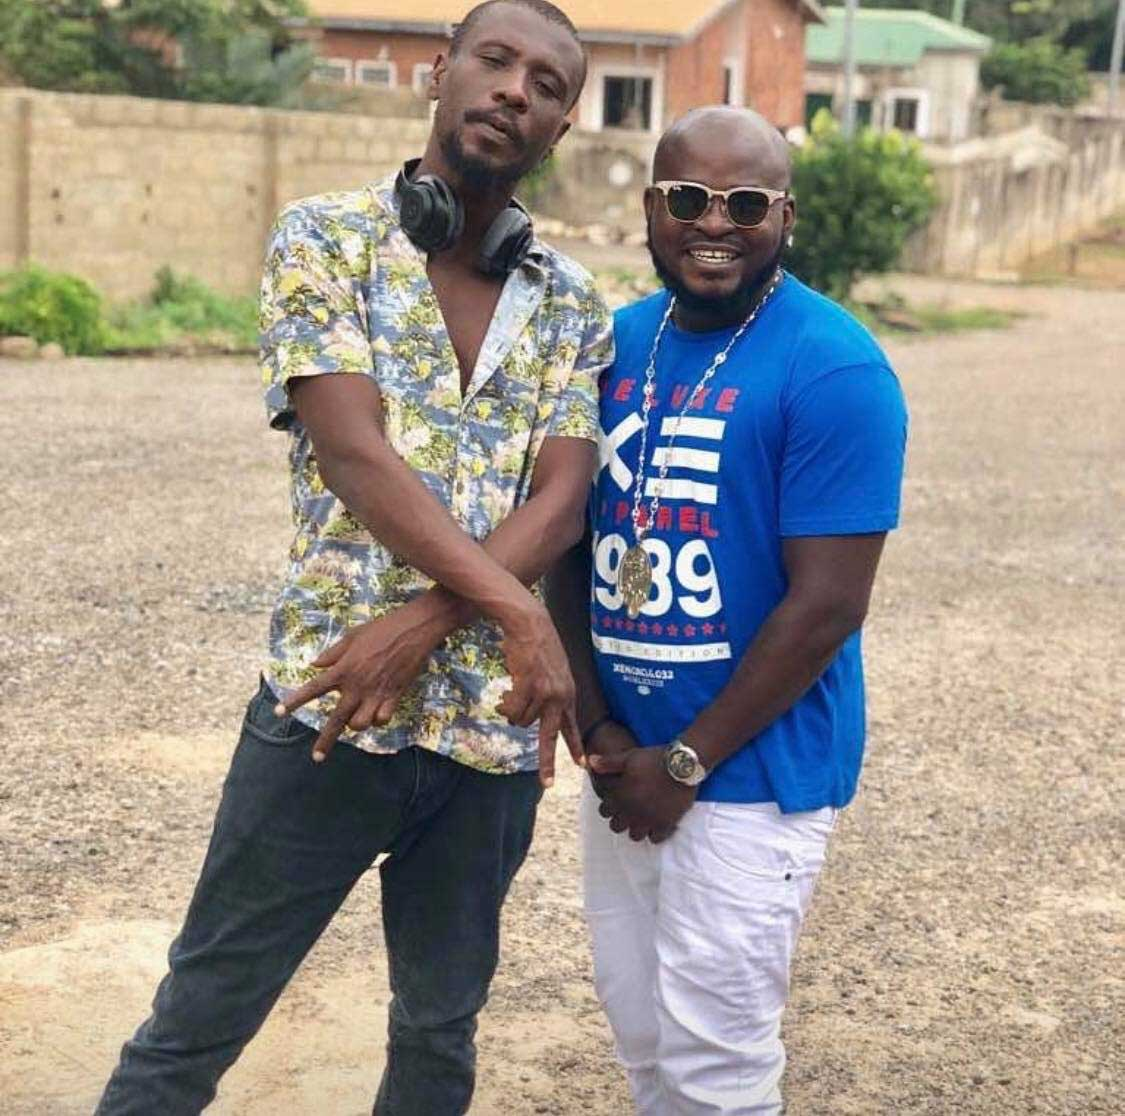 Oguns Kele and Okomfo Kwaade - Okomfo Kwaade has relapsed-Oguns Kele has sacked him from his house